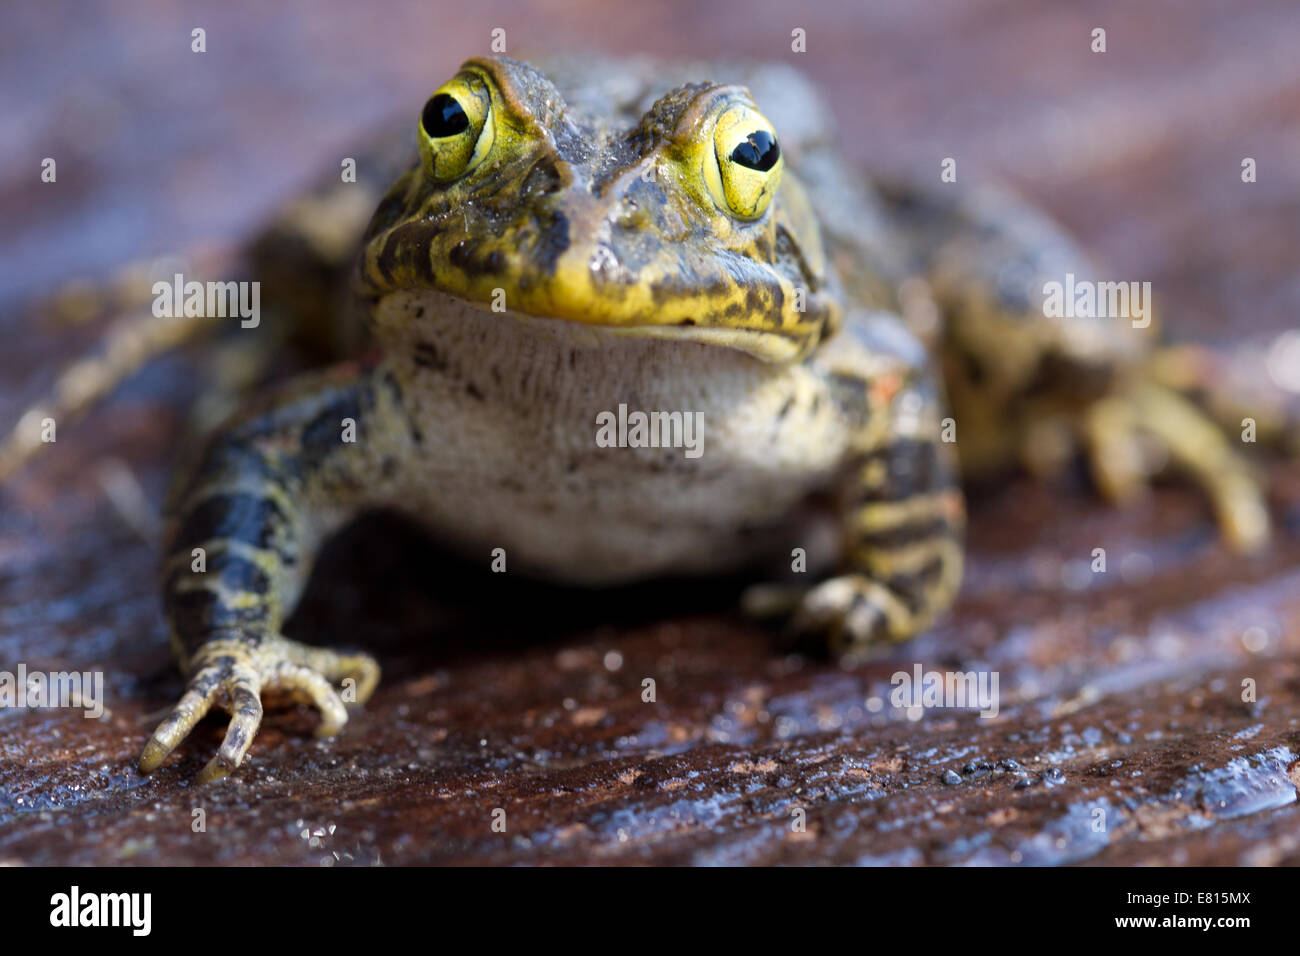 A large yellow frog sits on a smooth piece of wood in Bangweulu Wetlands, Zambia - Stock Image